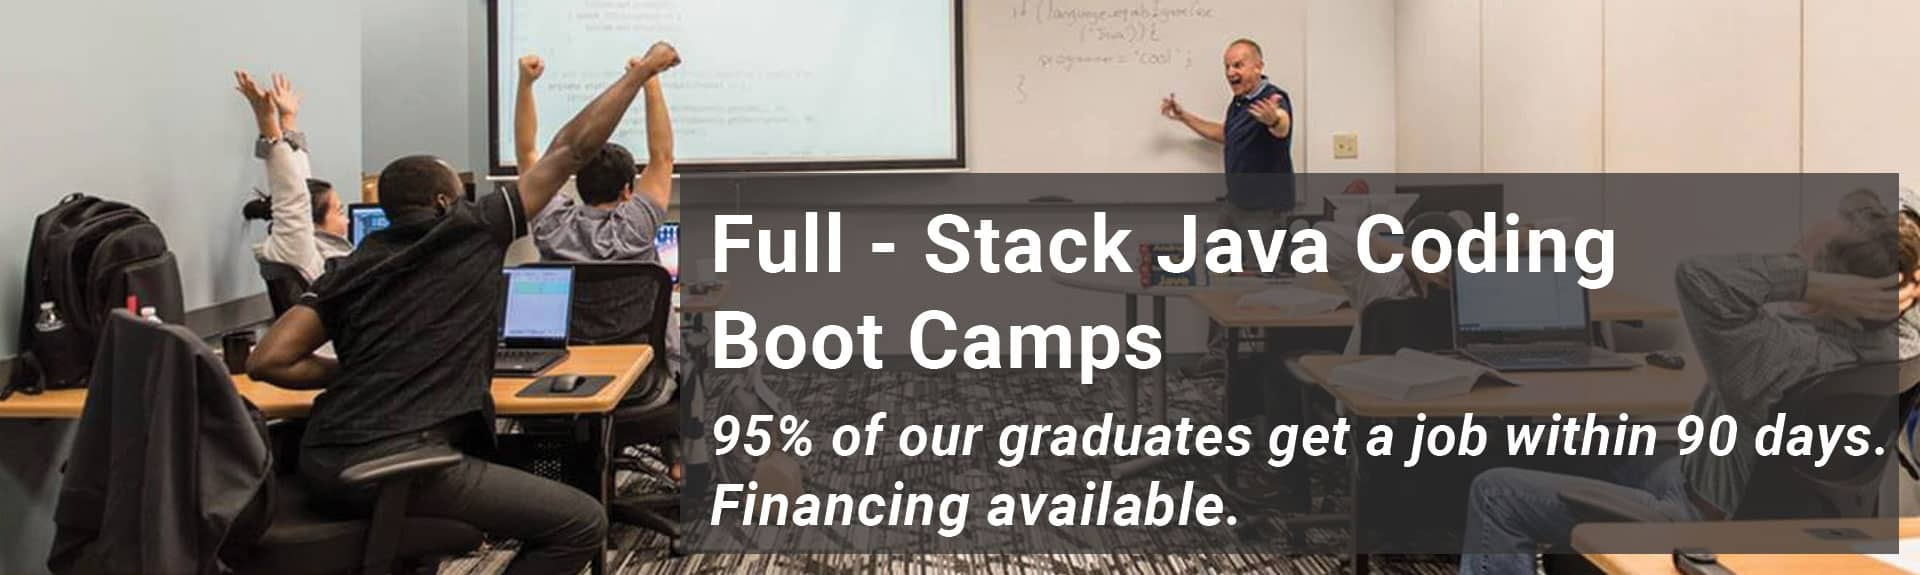 Full-Stack Java Coding Bootcamp - MAX Technical Training, Cincy Code IT